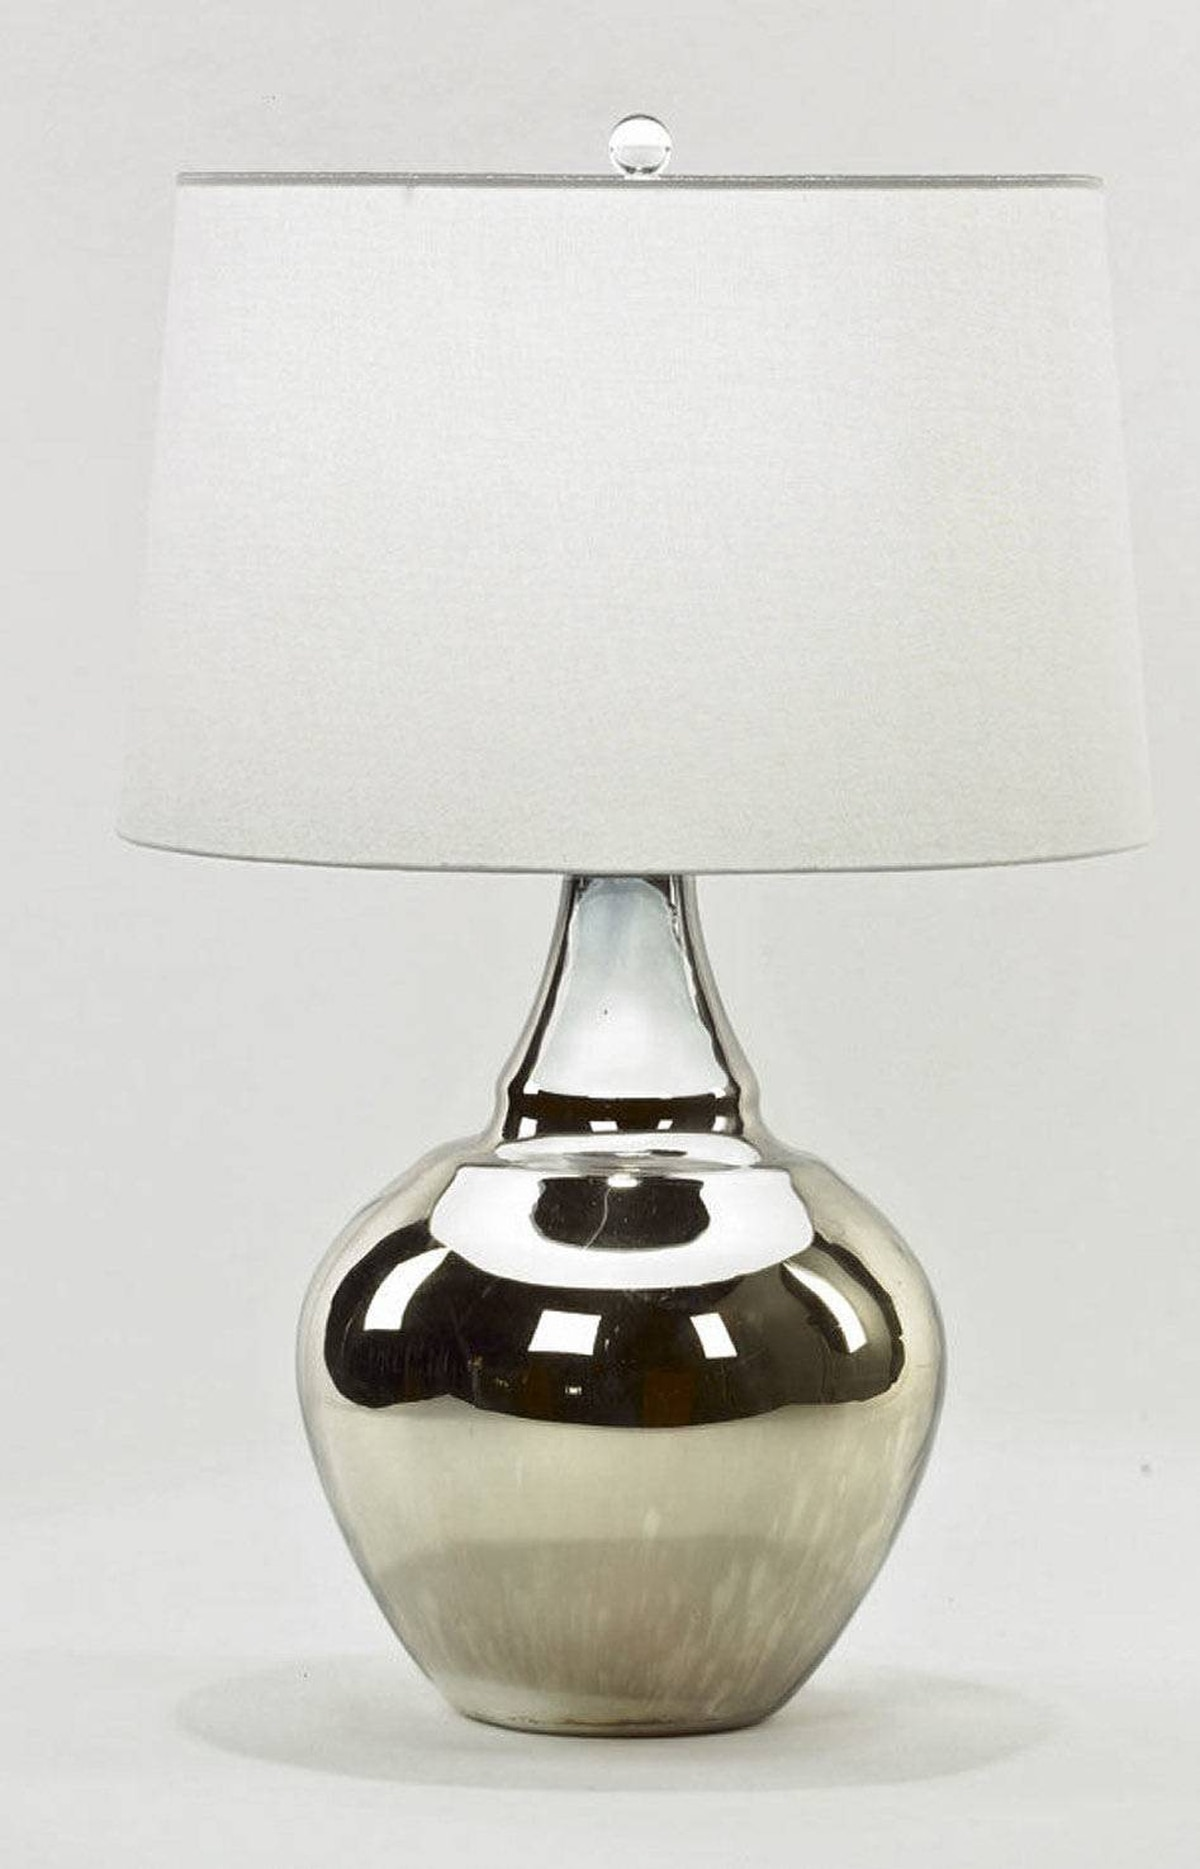 Casalife's Metallic Base table lamp has a nickel base with a glass finial and tapered drum shade. $284 through www.casalife.com.